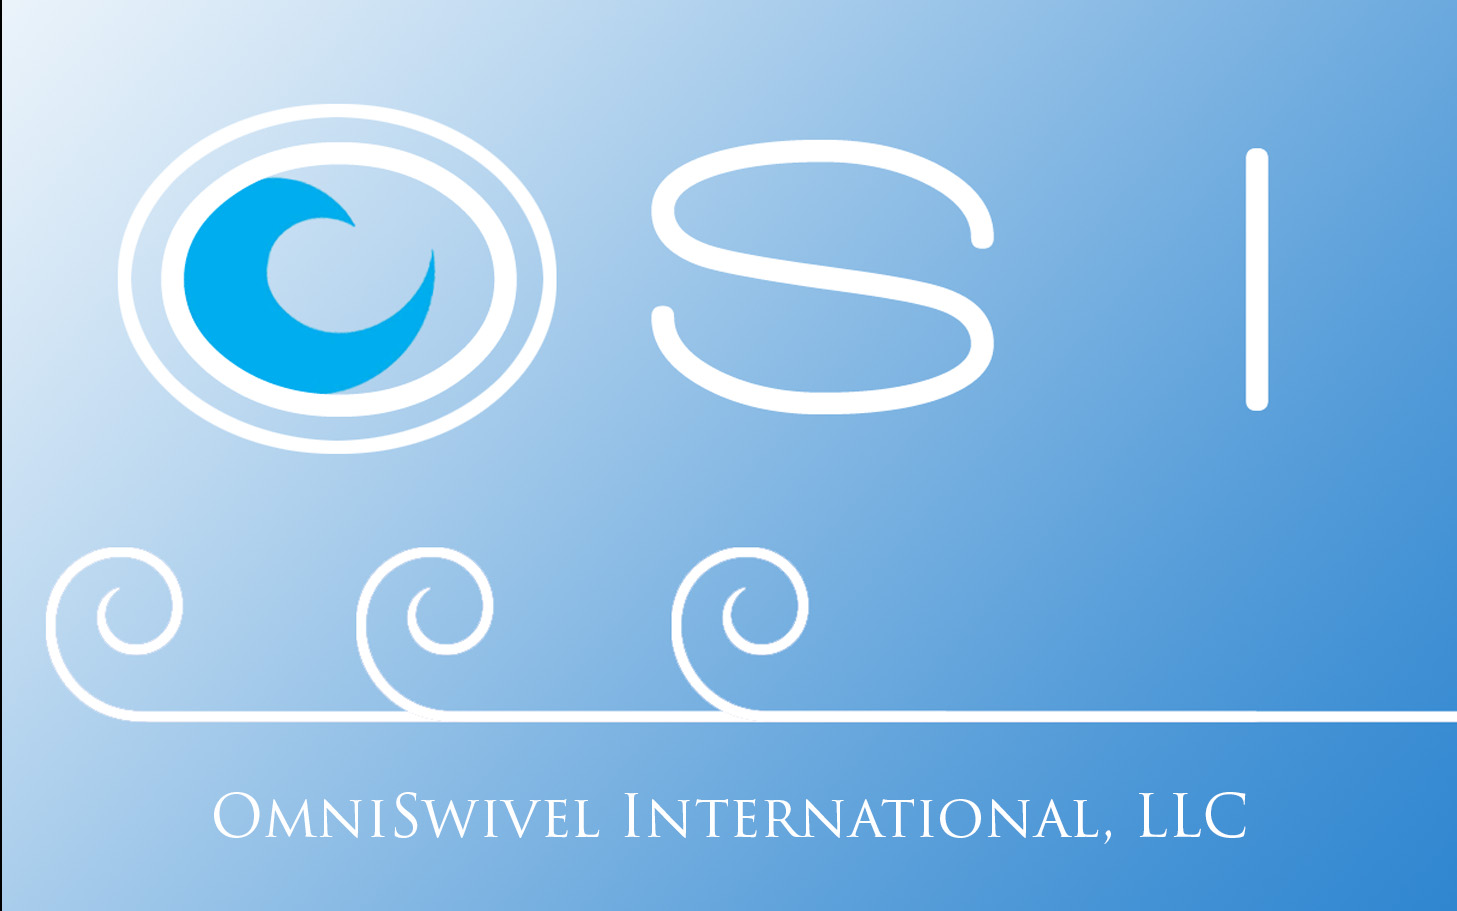 OmniSwivel International